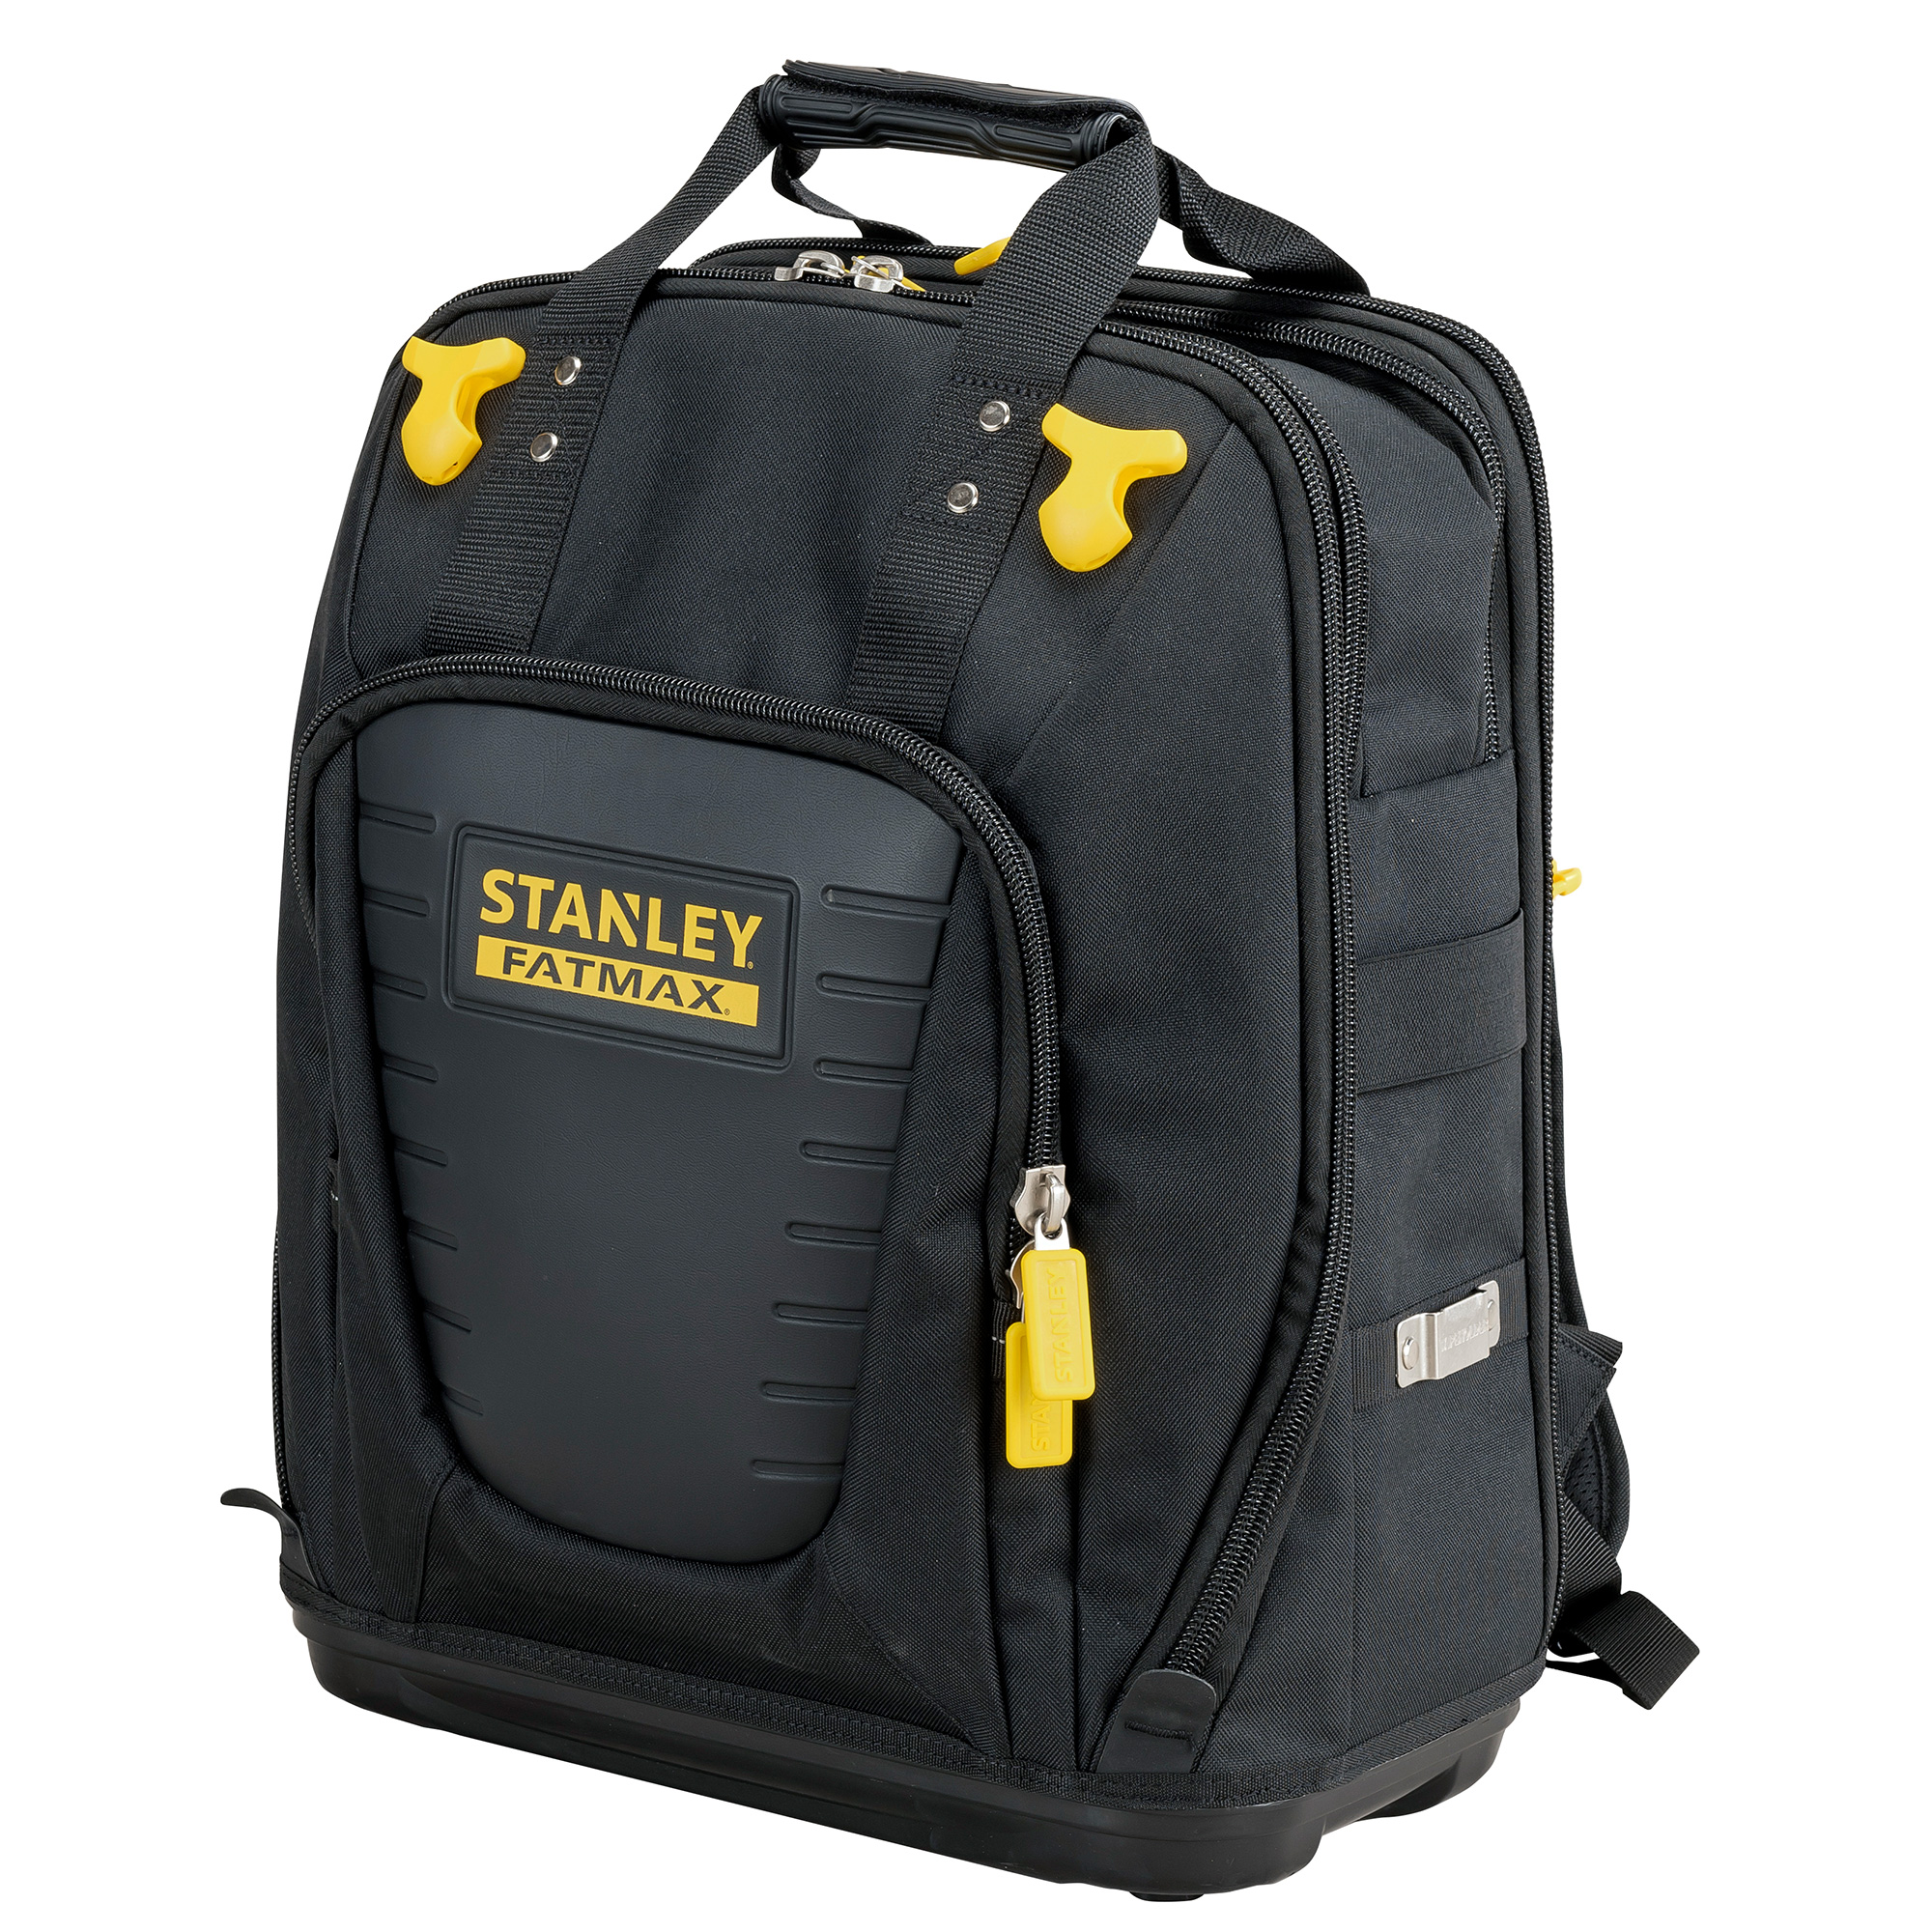 stanley fmst1 80144 stanley fatmax quick access premium backpack. Black Bedroom Furniture Sets. Home Design Ideas